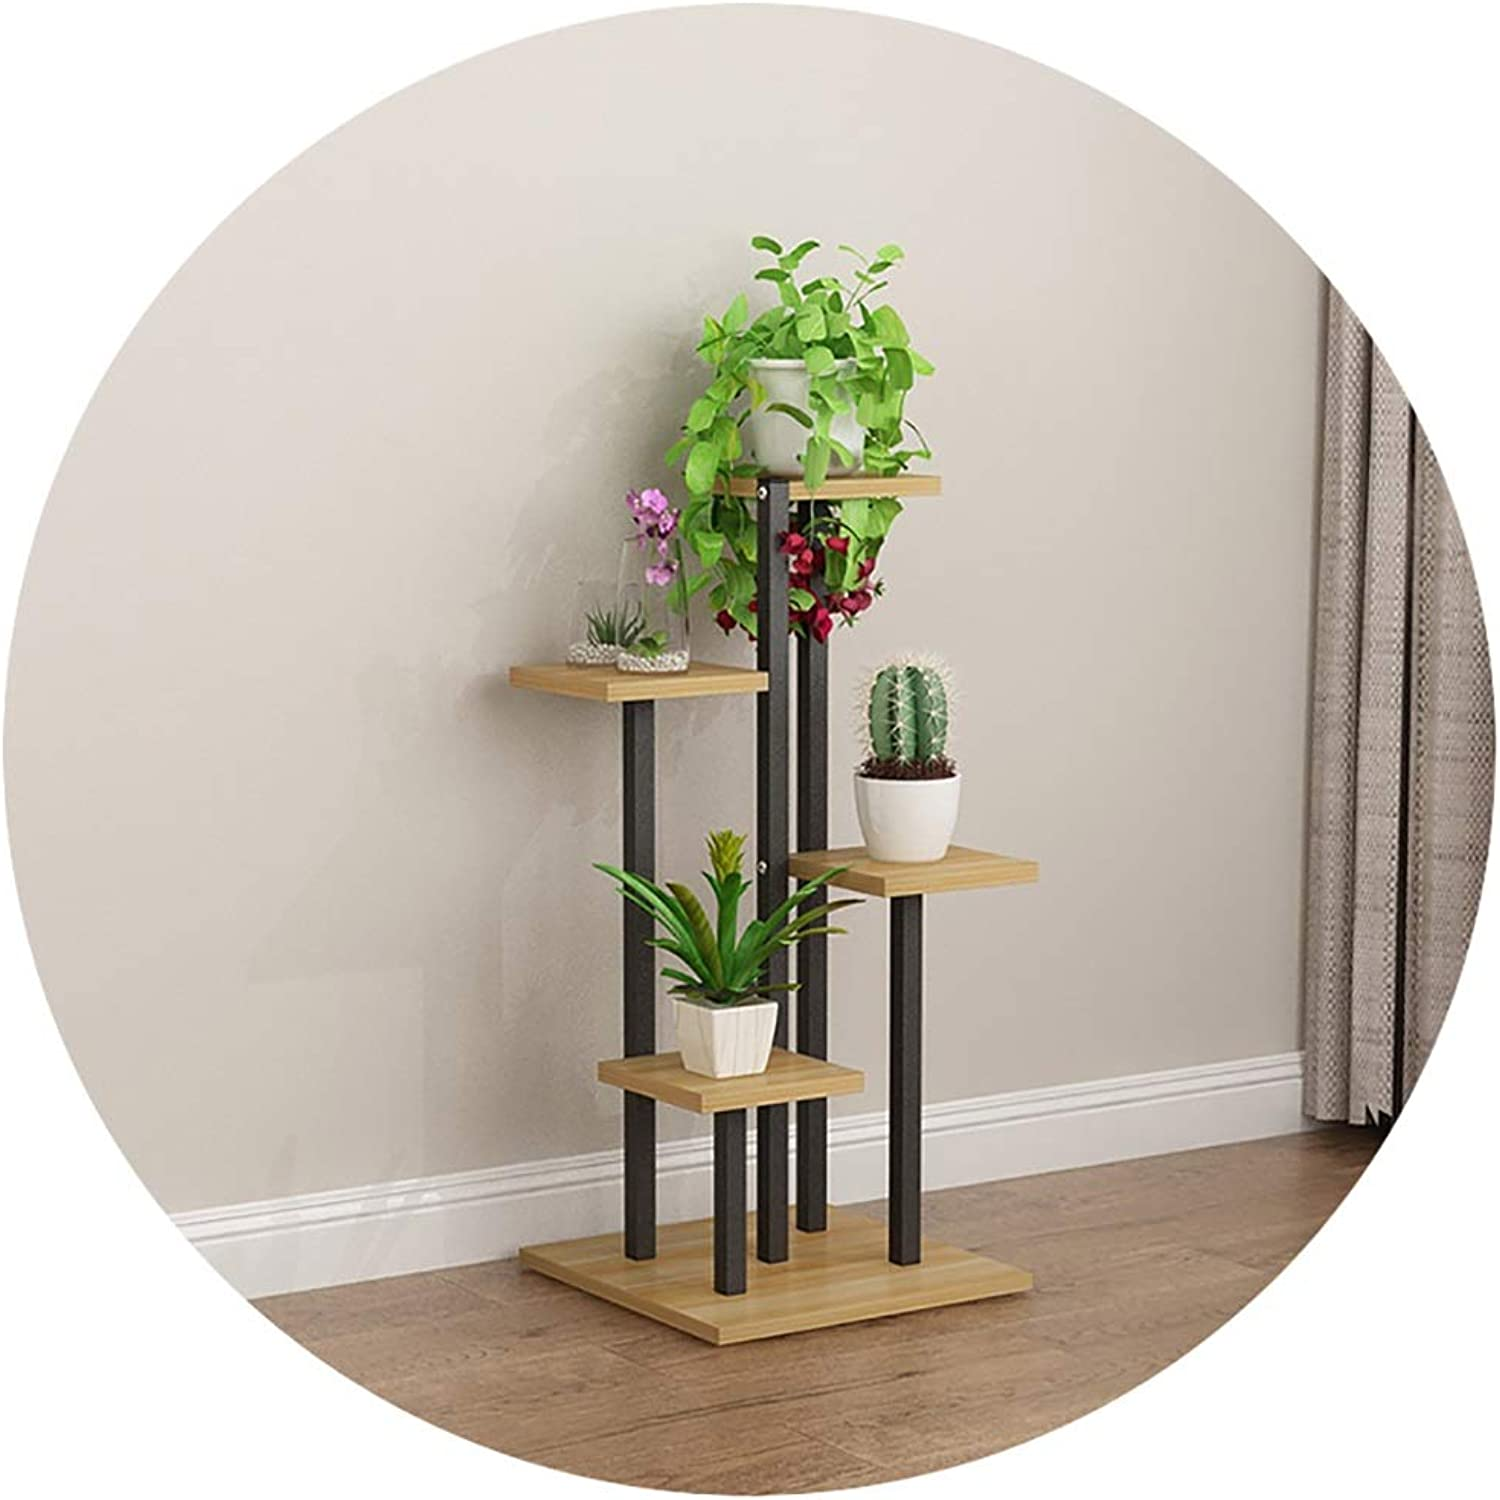 Plant Container Iron Flower Ladder Stand, Multi-Functional Floor Plant Decoration Living Room Bedroom Balcony Flower Pot Rack (color   A, Size   40x40x80cm)